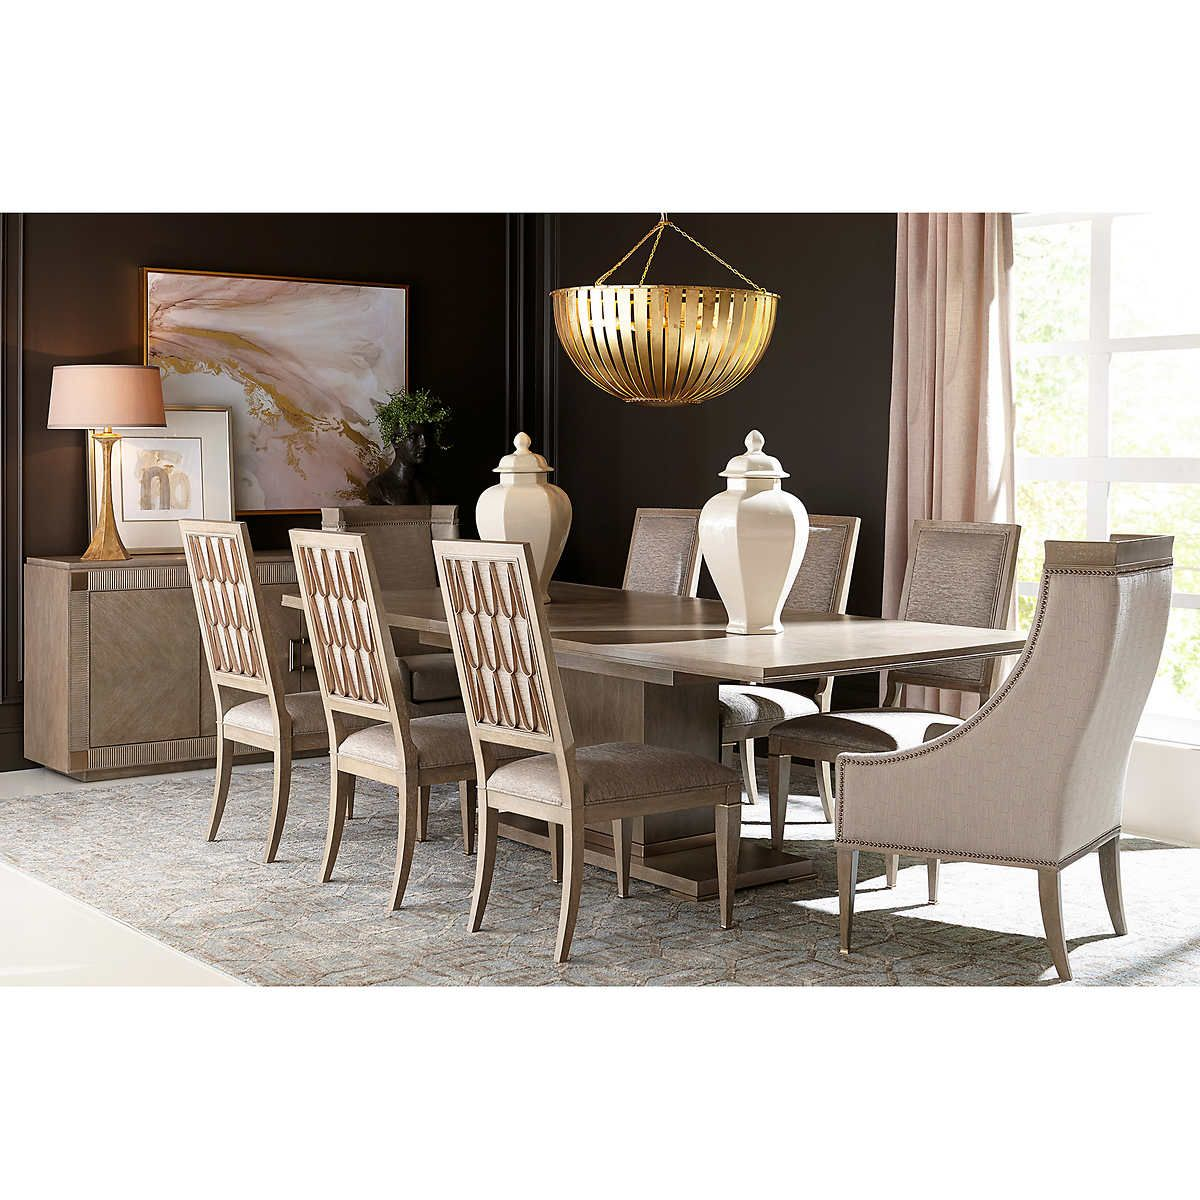 Pin By Taleia Powell On Dining Room Idea Dining Room Sets Dining Furniture Sets Dining Room Set